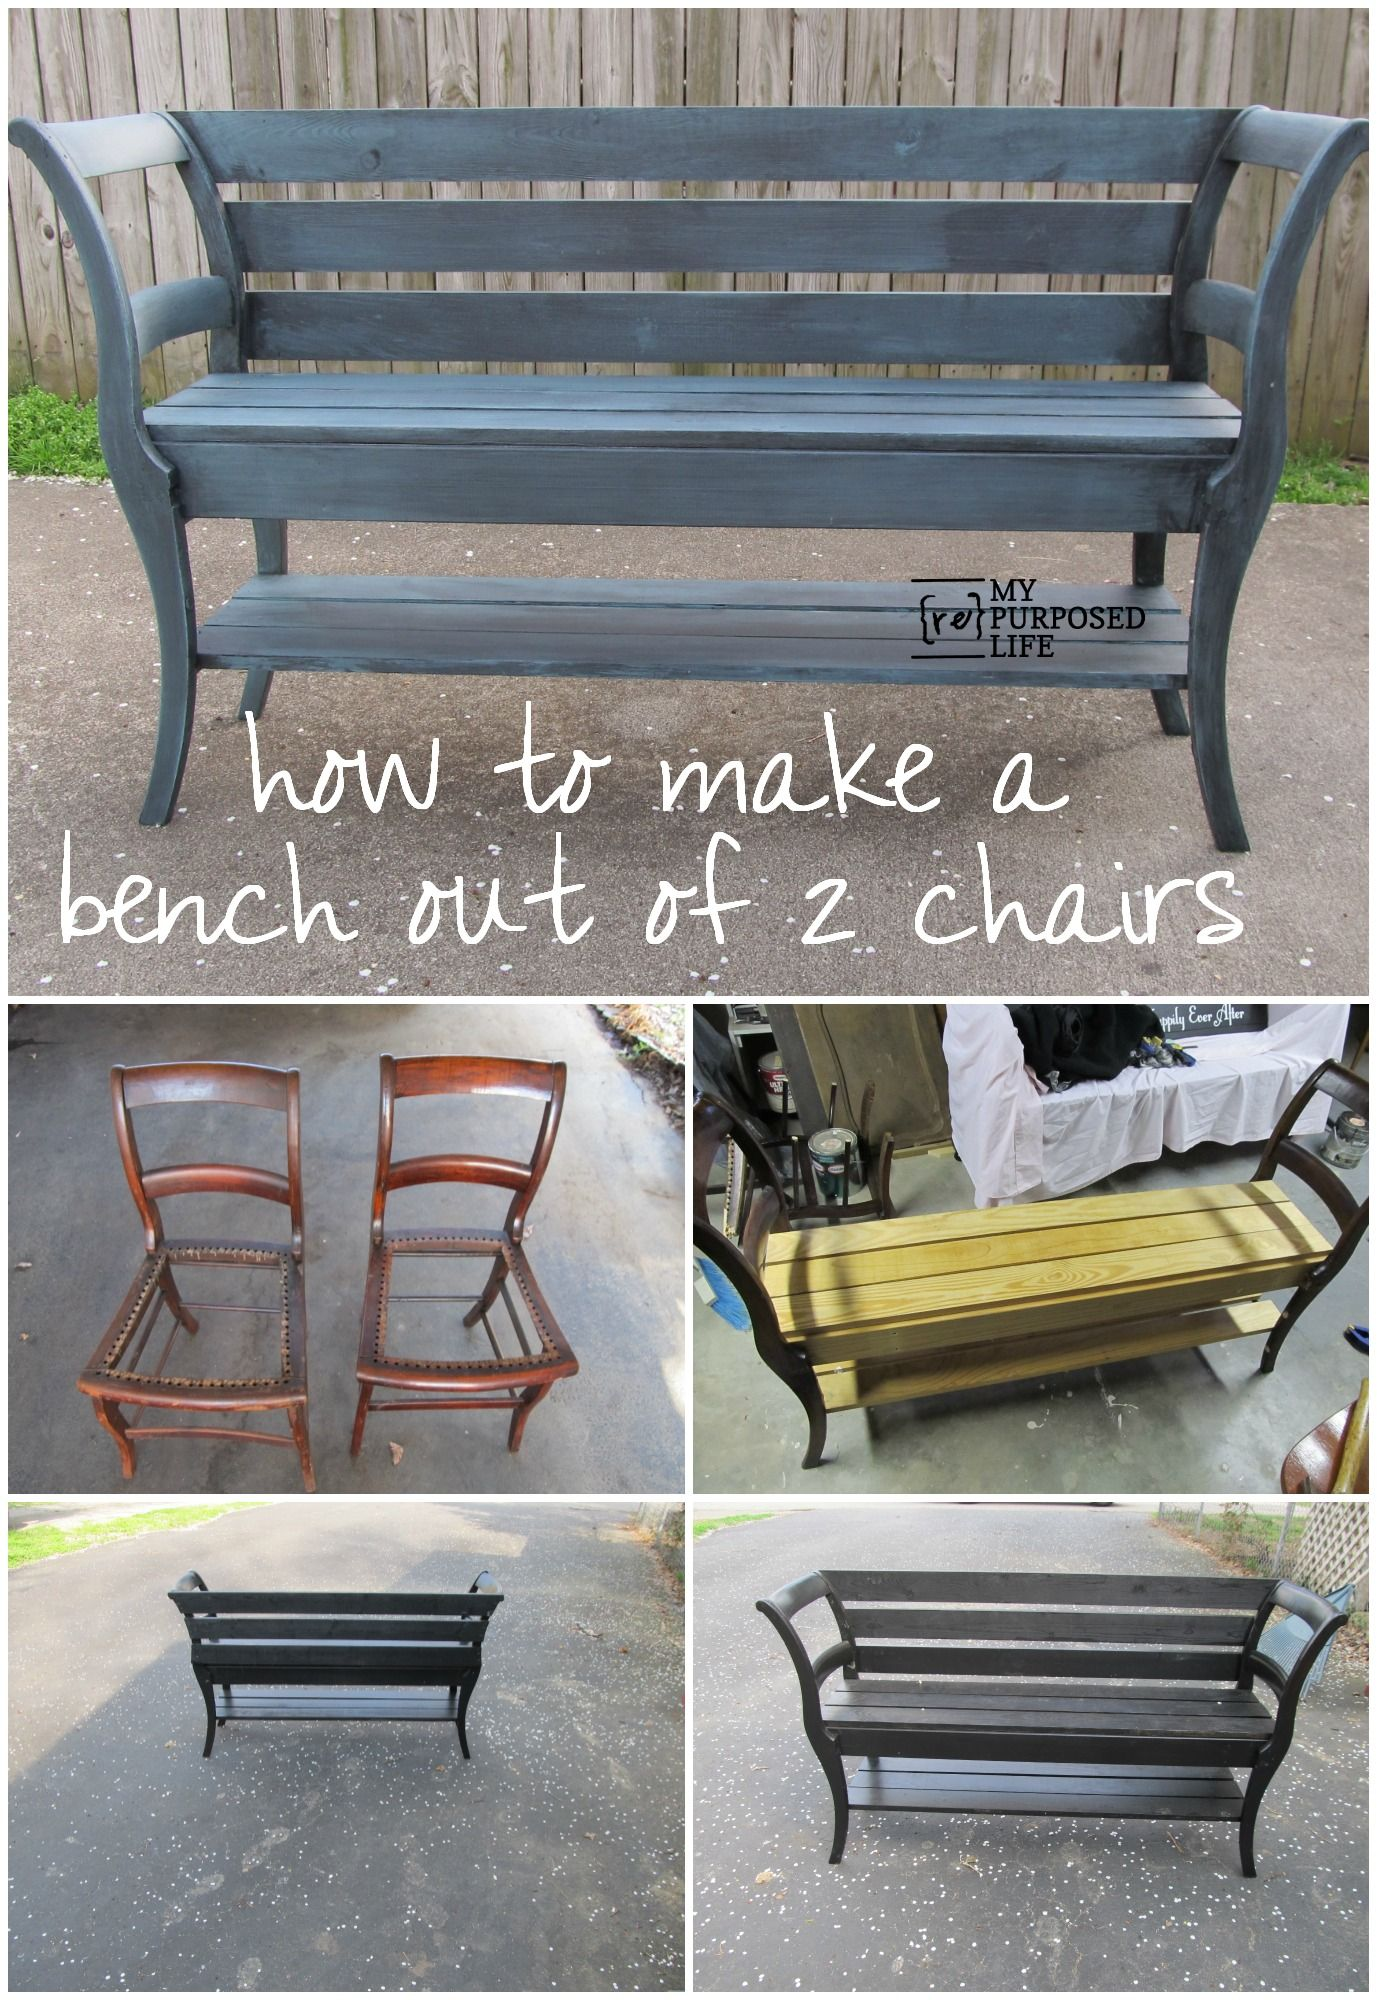 Info's : How to make a double chair bench using repurposed chairs. The step by step tutorial pictures would not open, but this is good enough for me to see the magic of a bench made from two chairs.I love this bench